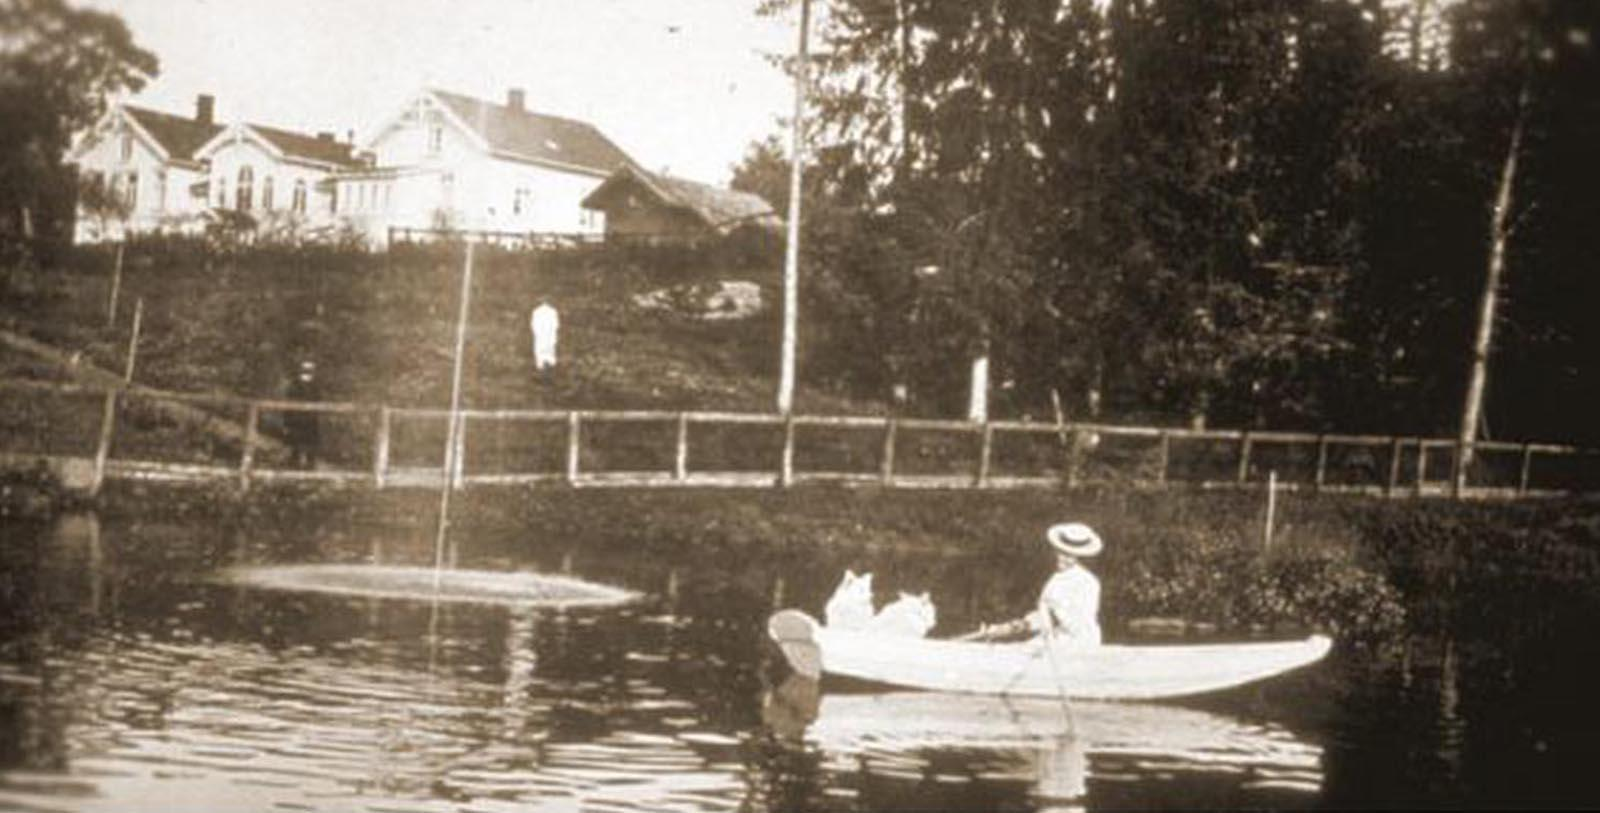 Historic Image of Guest on a Boat Losby Gods, 1744, Member of Historic Hotels Worldwide, in Finstadjordet, Norway, Discover